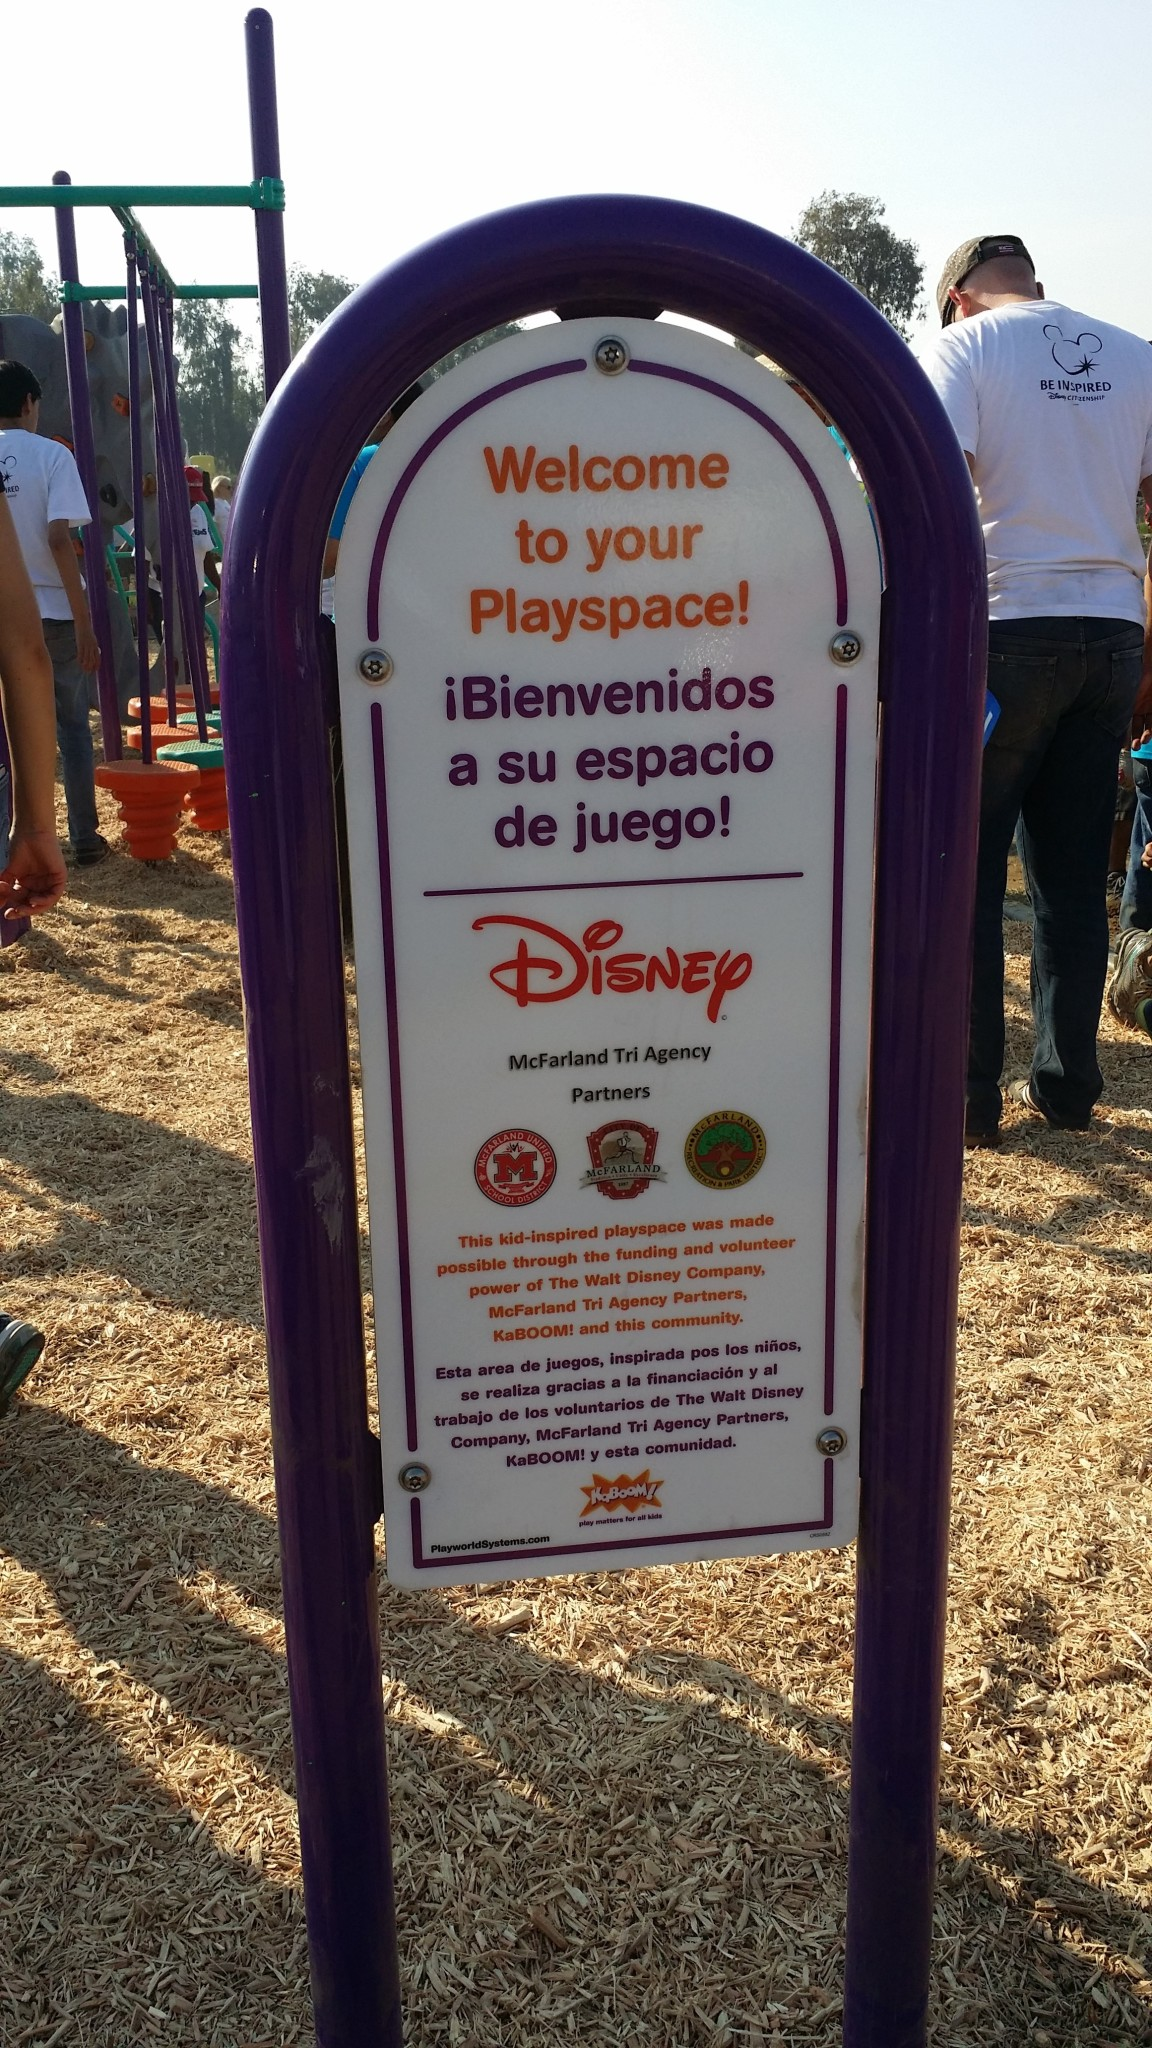 Disney joins forces with McFarland community to build playground.